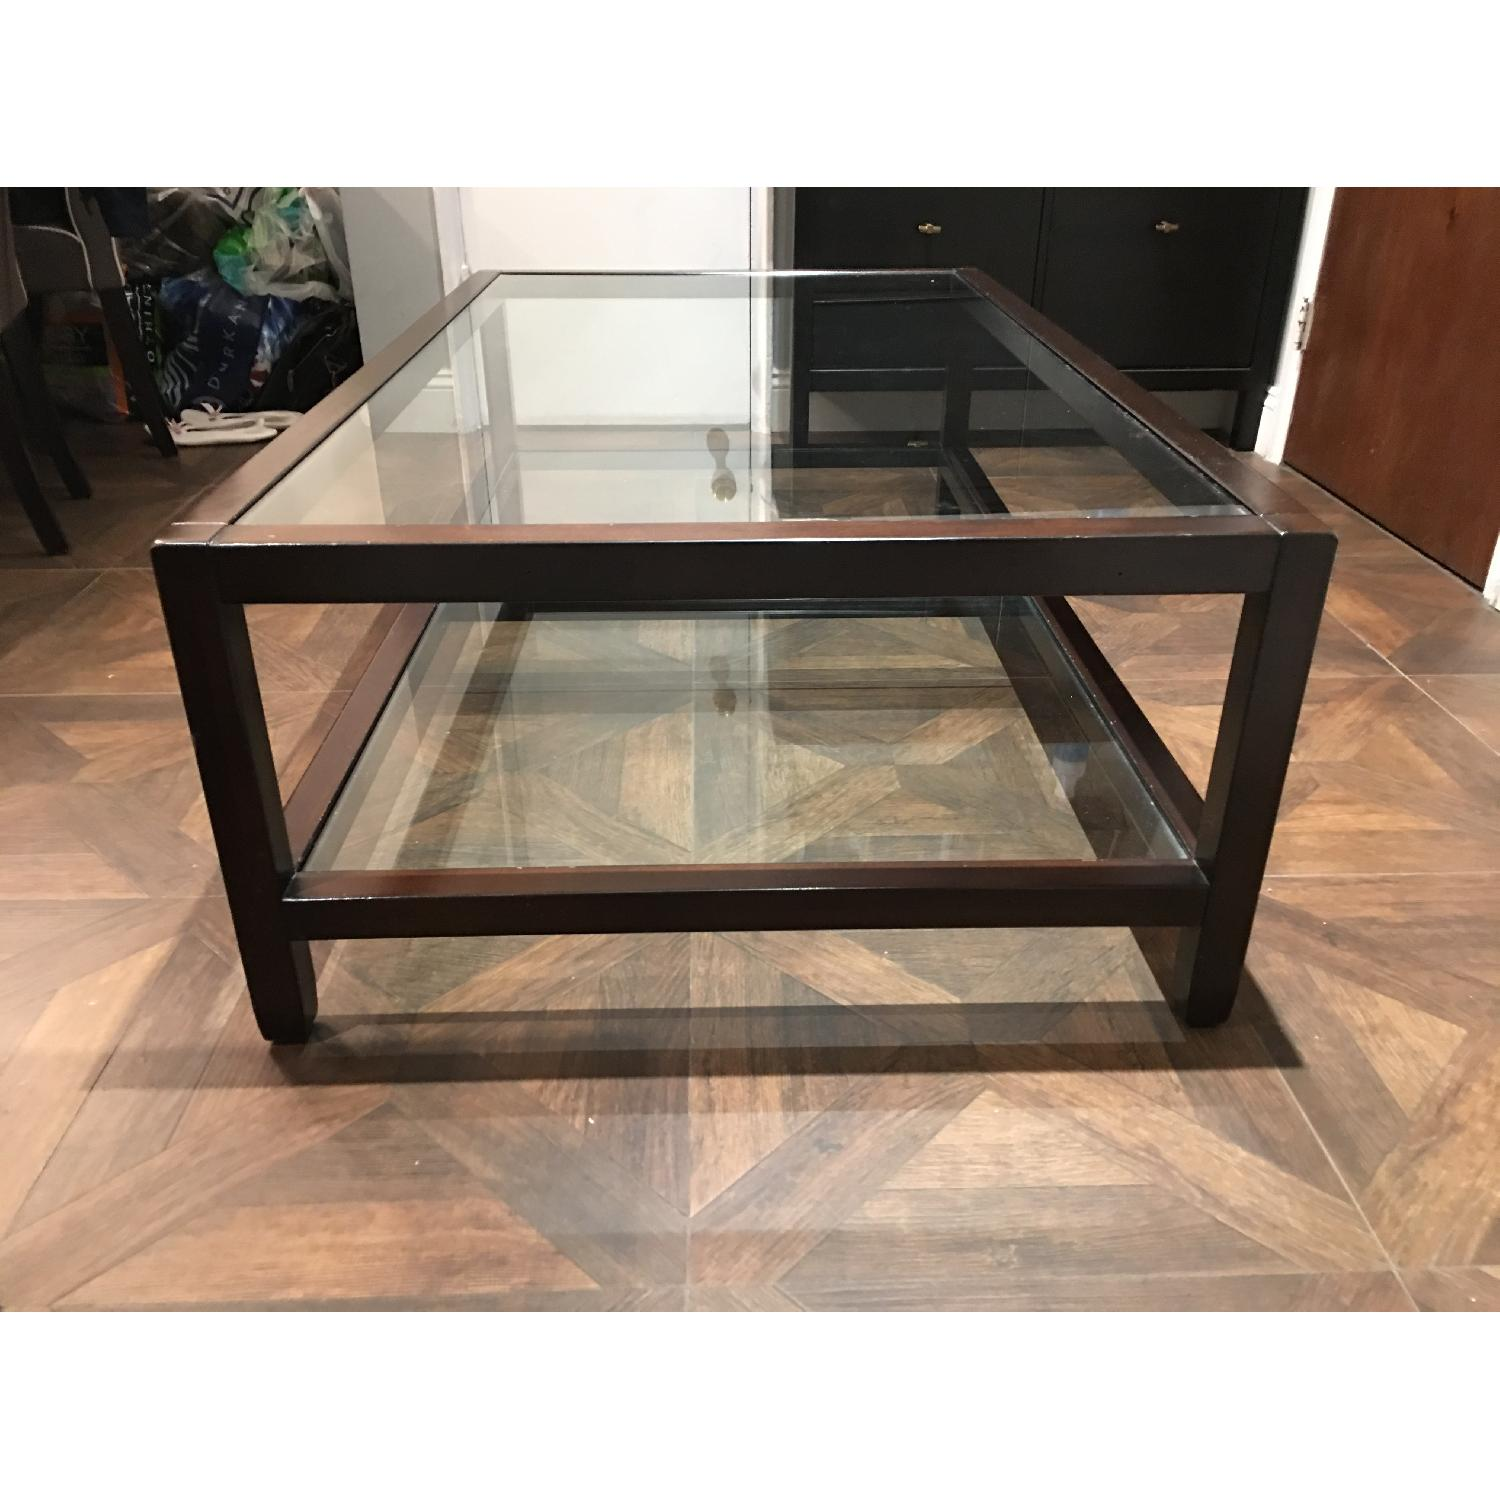 Pottery Barn Glass & Wood Coffee Table - image-1